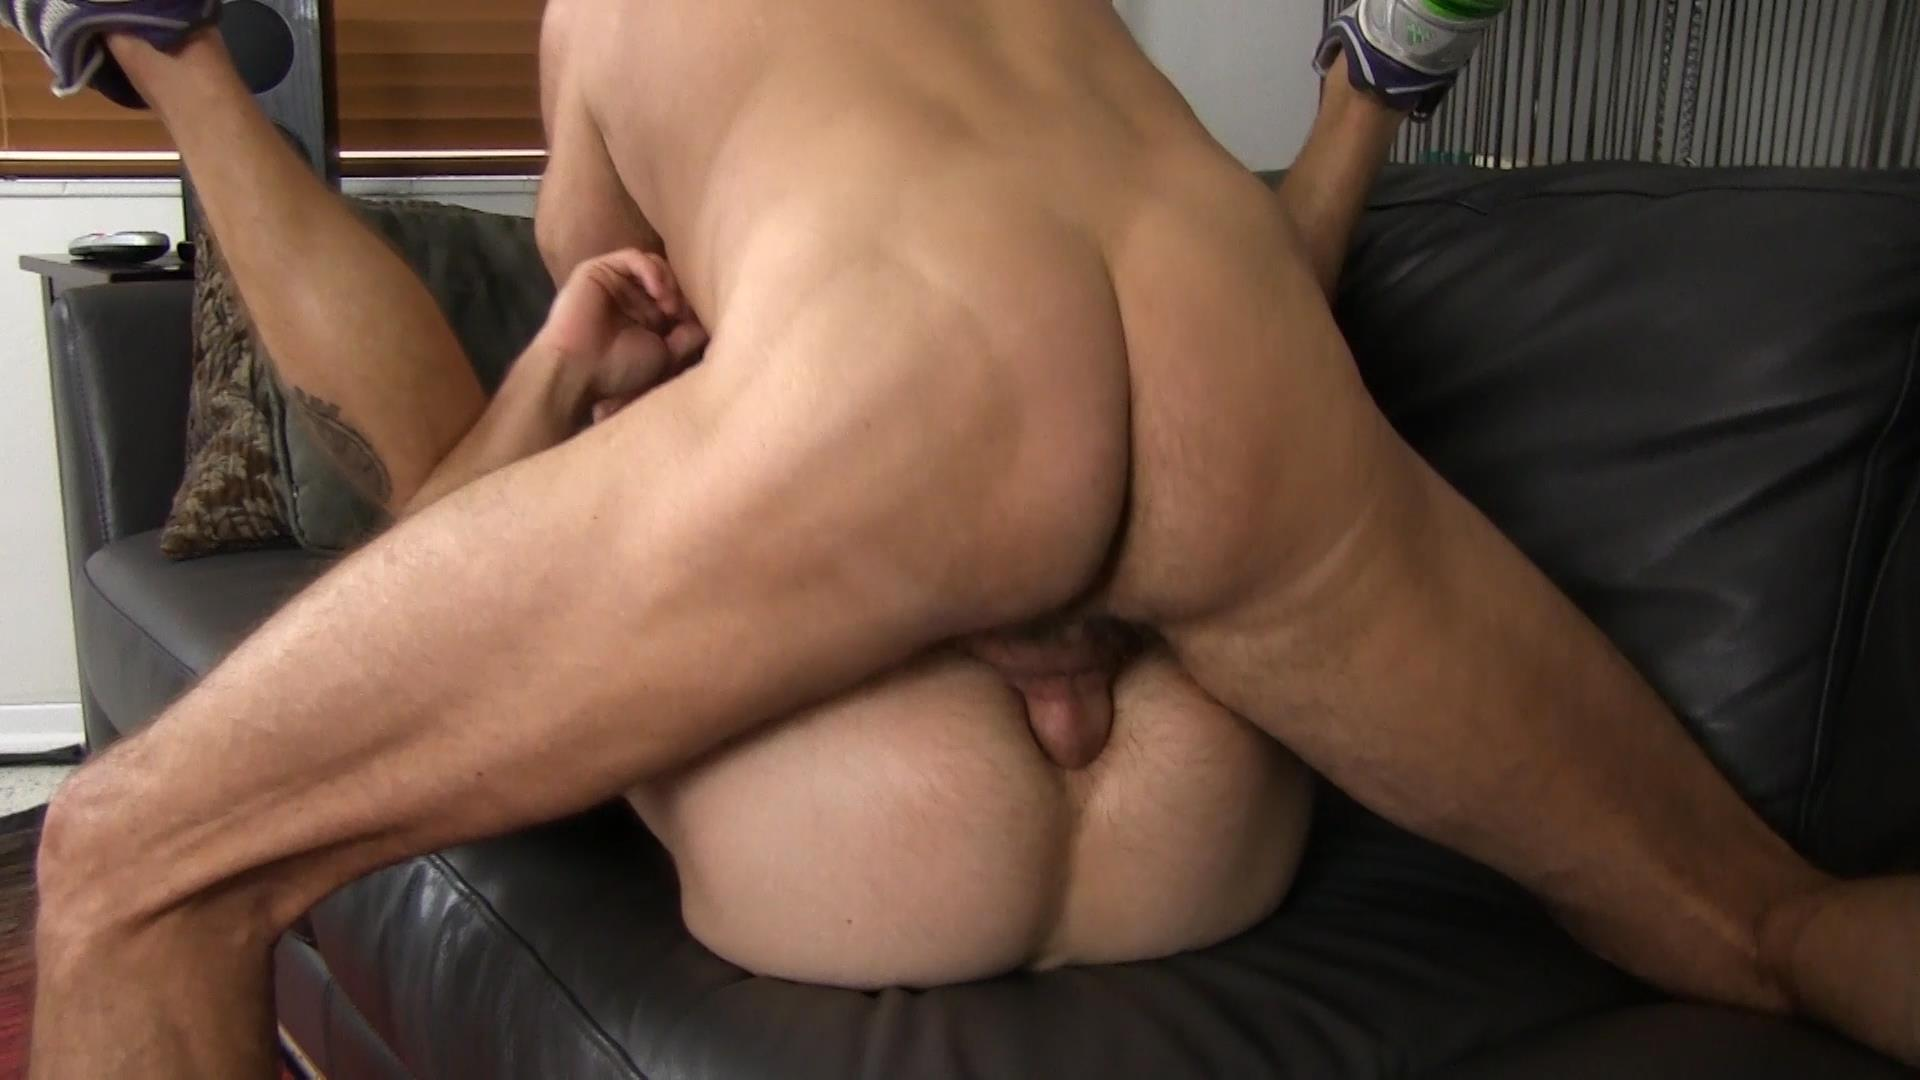 Bareback Me Daddy Silver Daddy Barebacks Younger Guy Amateur Gay Porn 24 Getting Barebacked By A Thick Daddy Dick